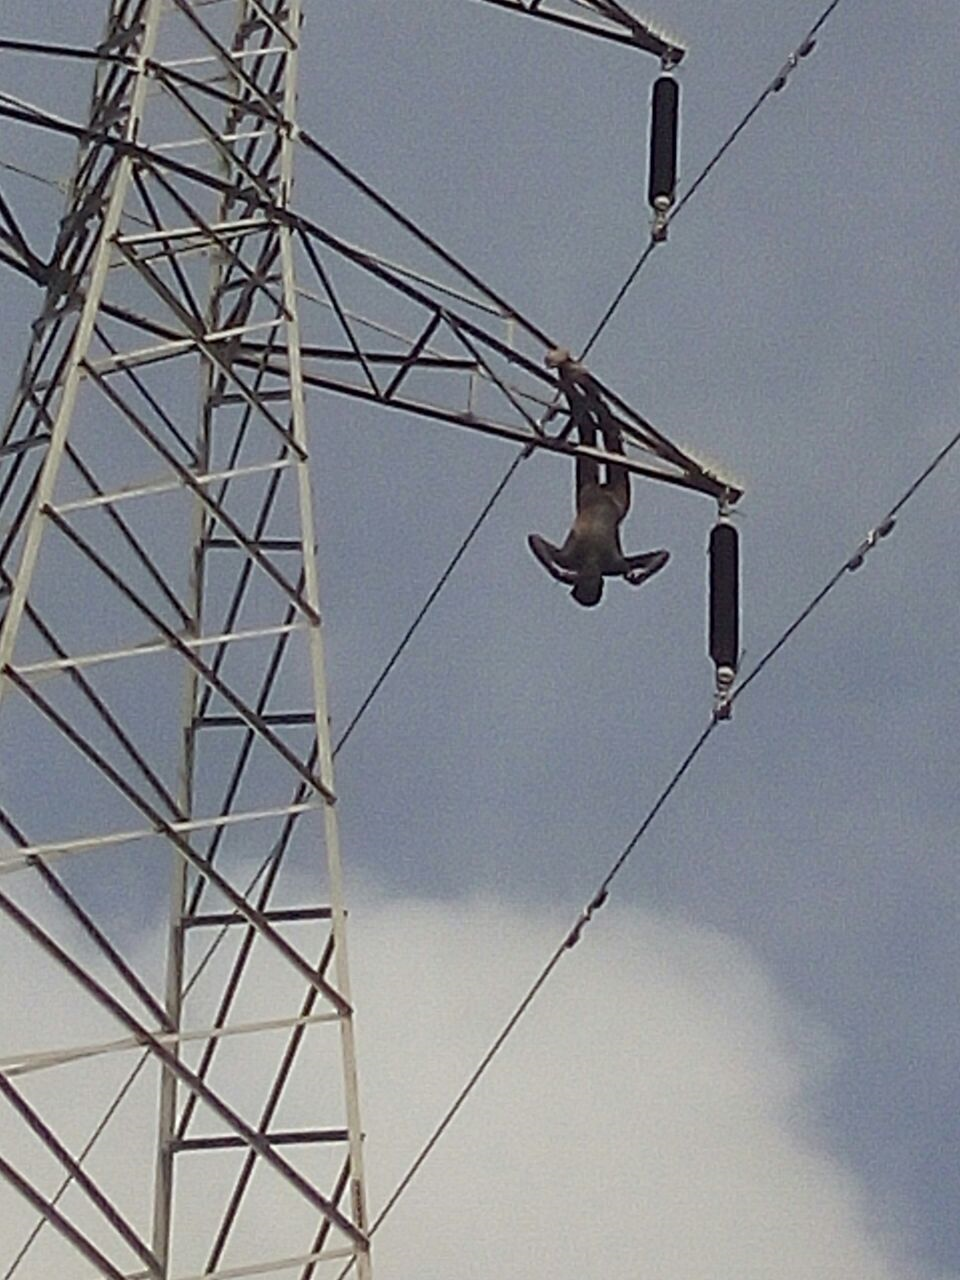 HIGH TENSION WIRE ELETROCUTES CABLE VANDAL | CKN News